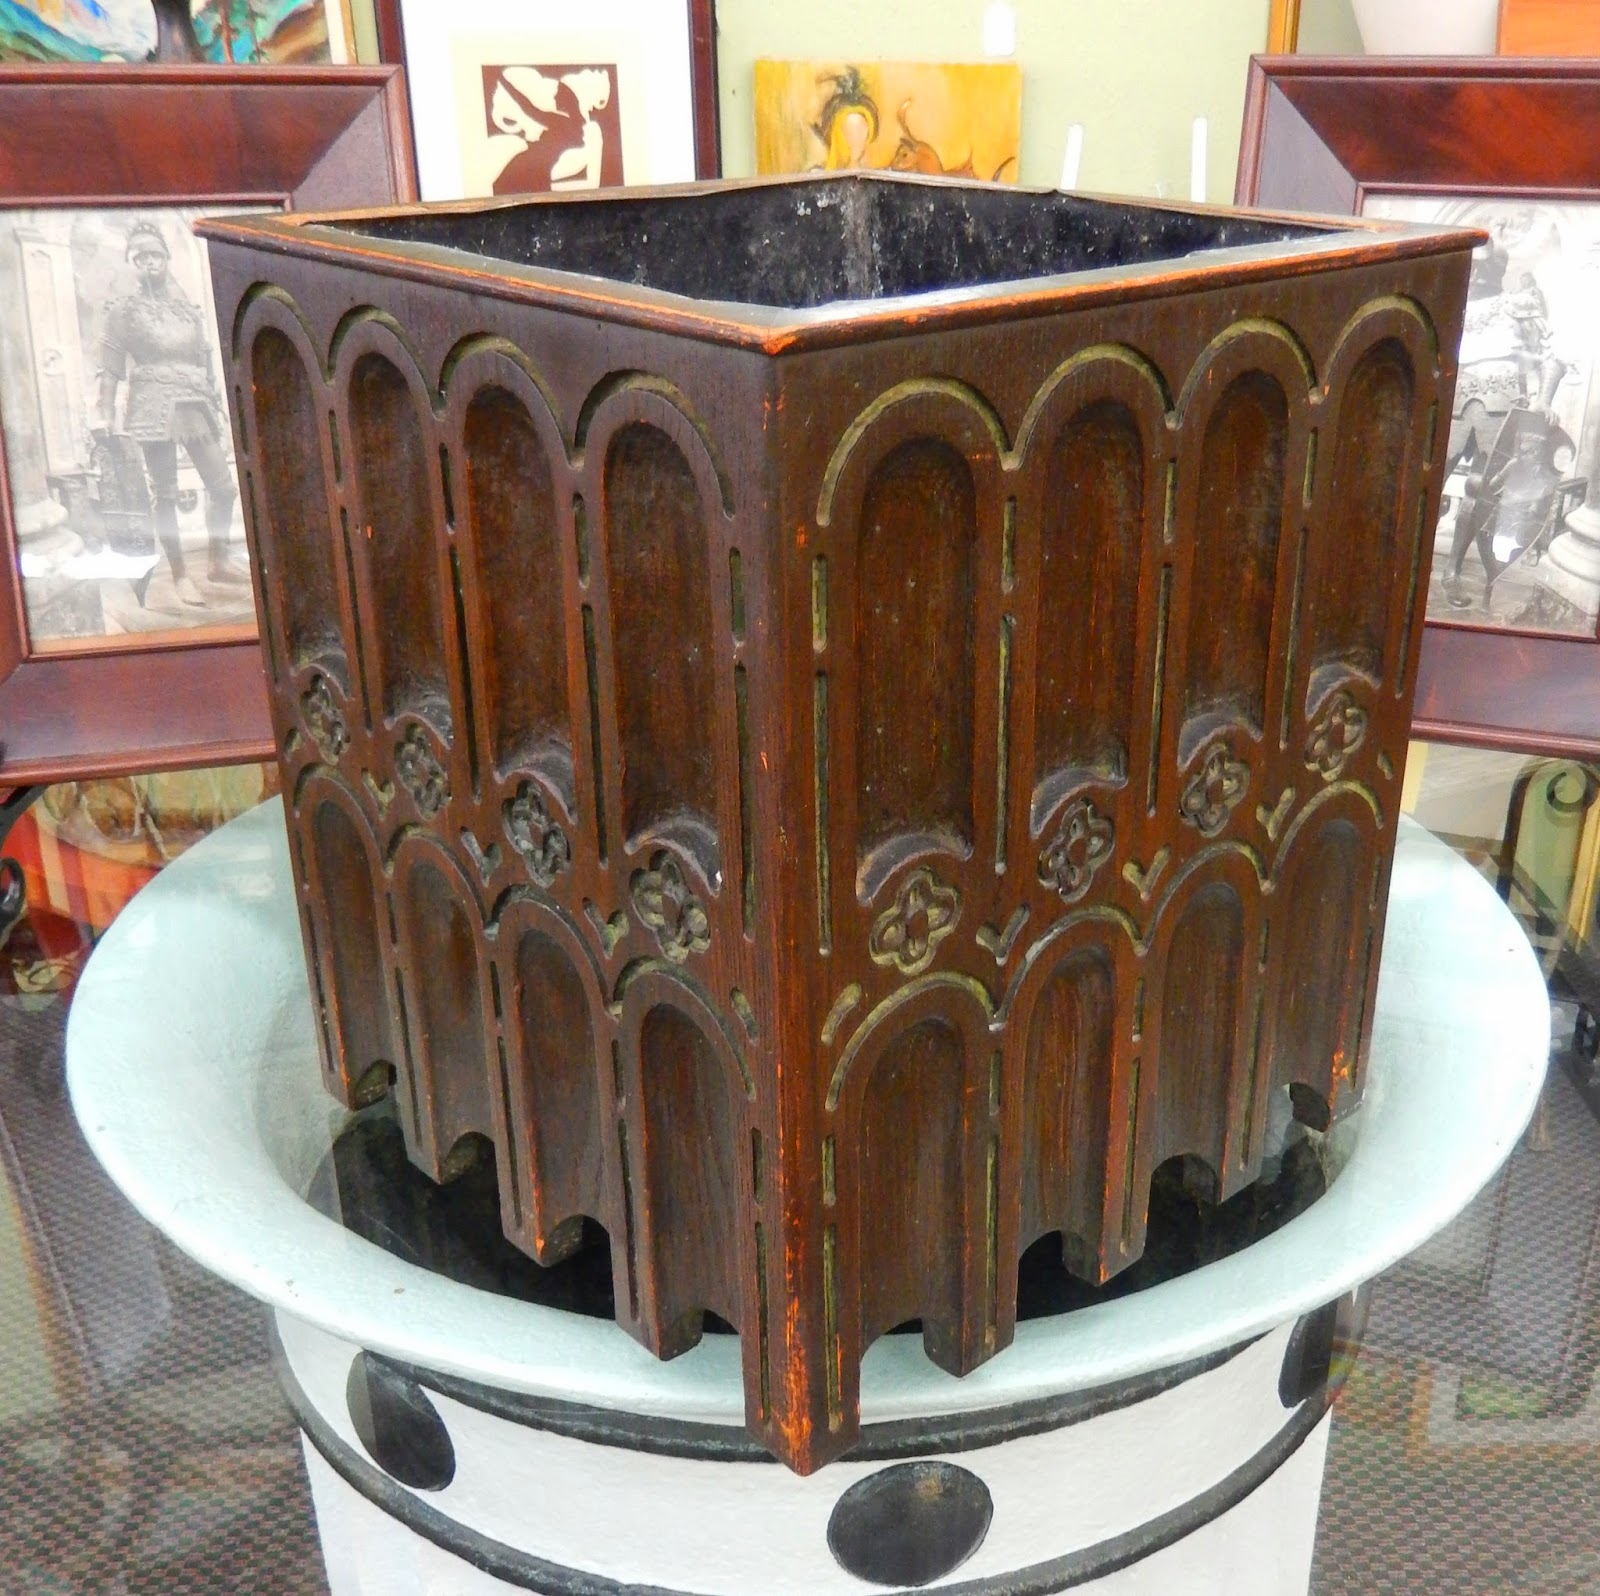 Vintage Unusual Hand Carved Gothic, Arts & Crafts Wooden Planter Box